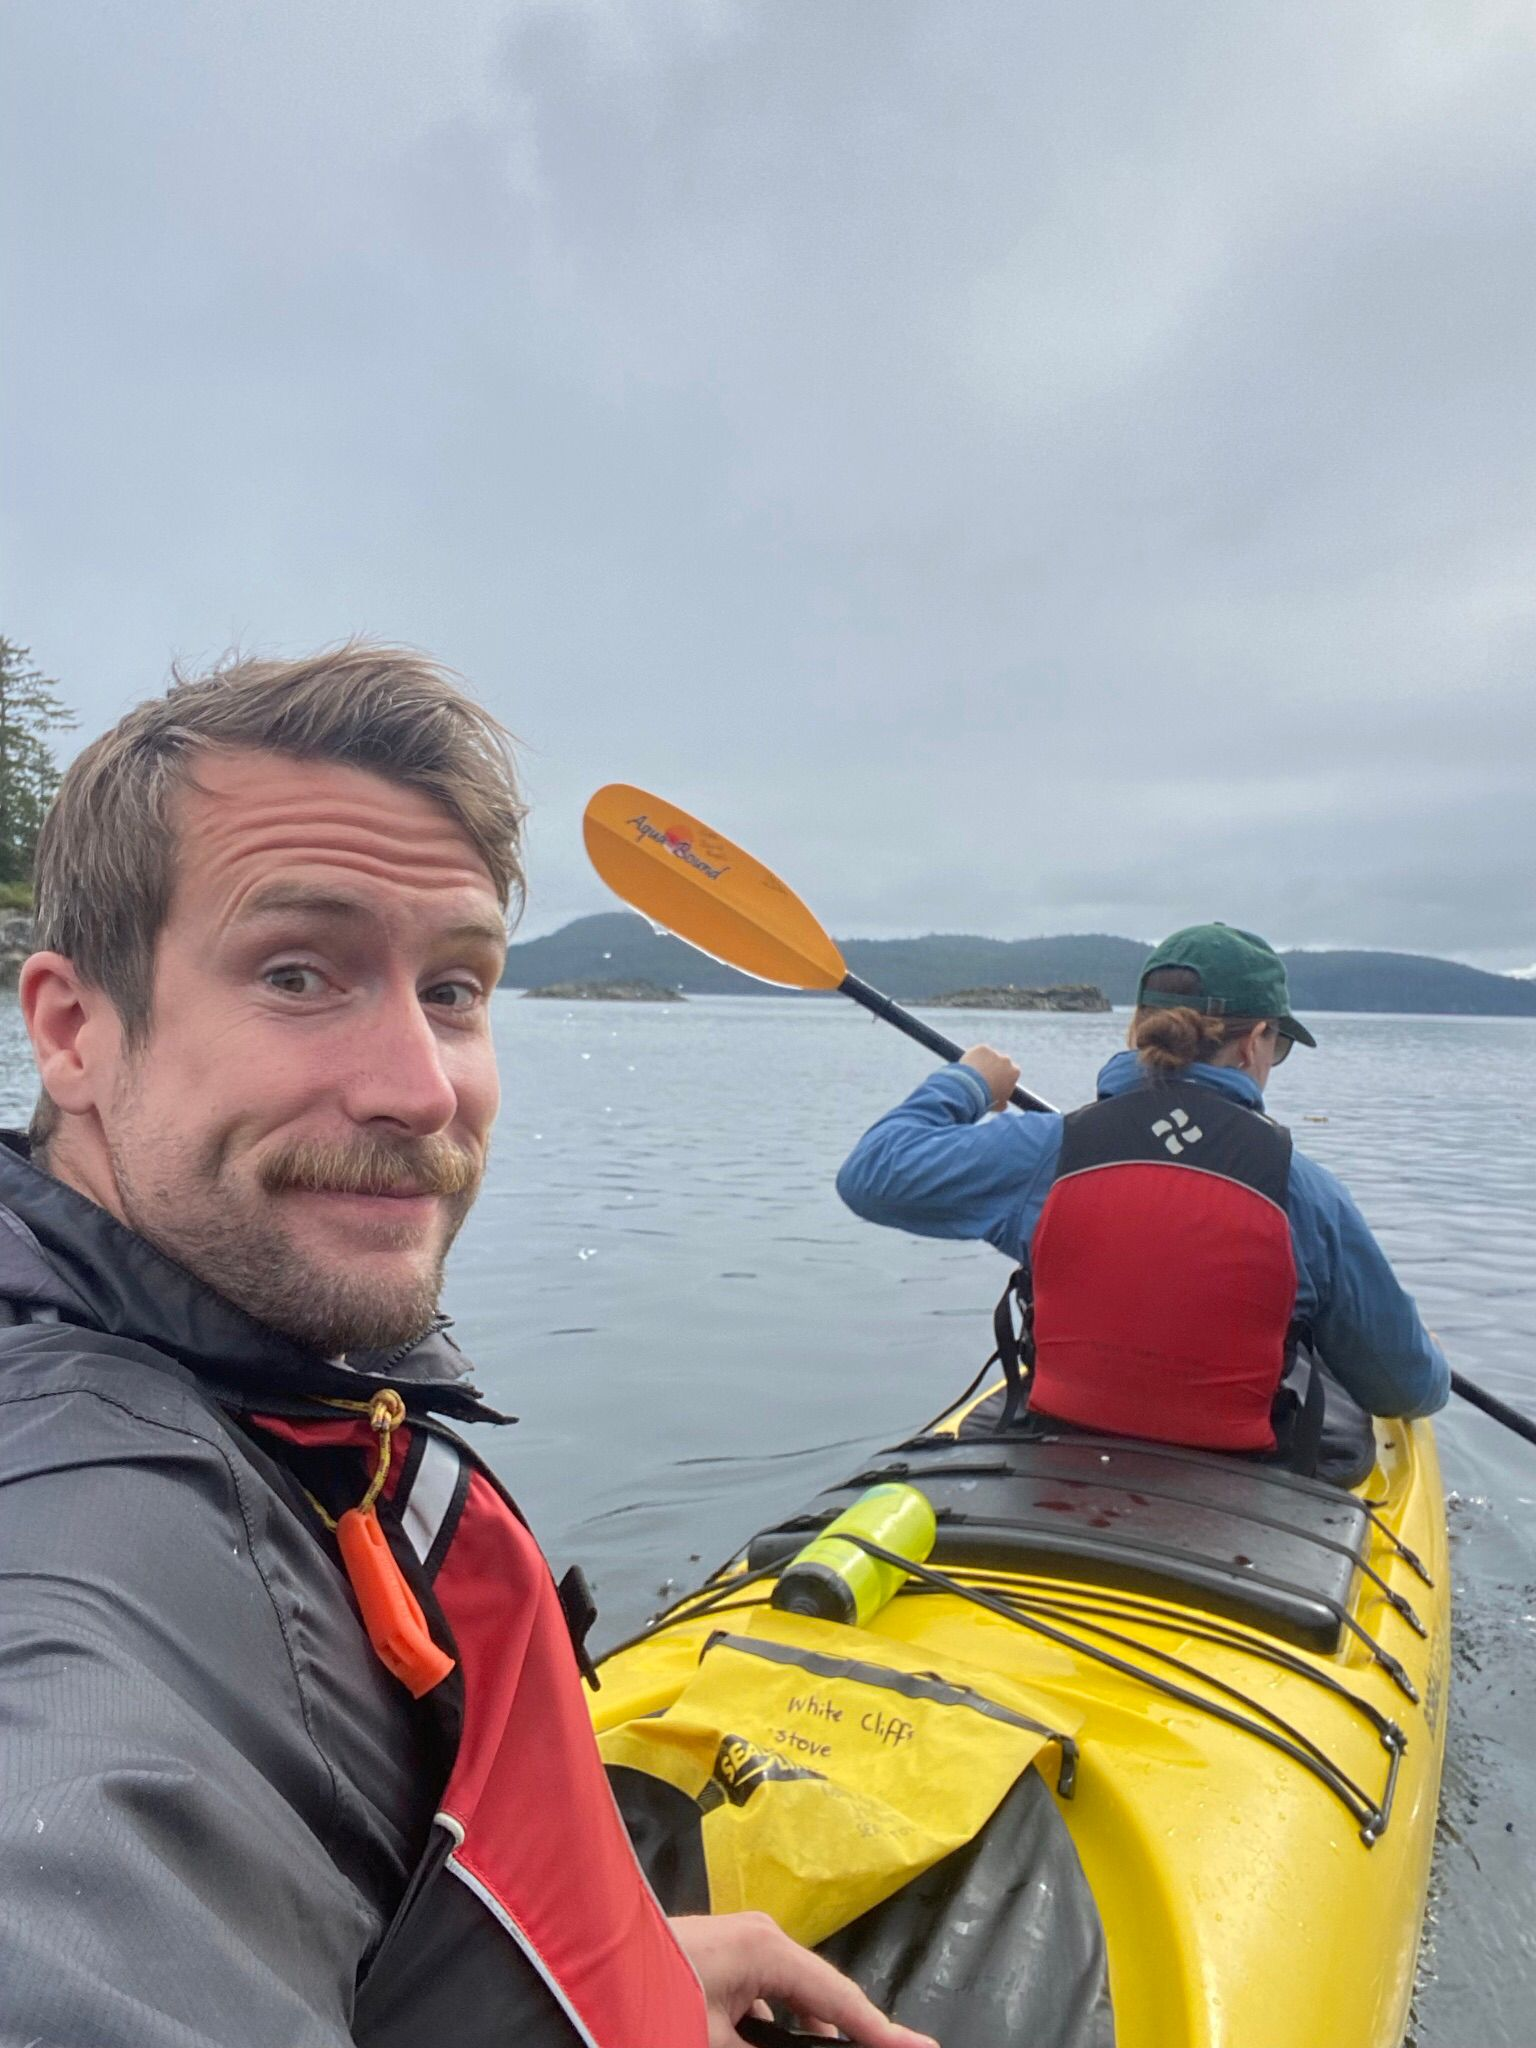 A man and woman kayaking in a yellow kayak under cloudy skies fundraising.